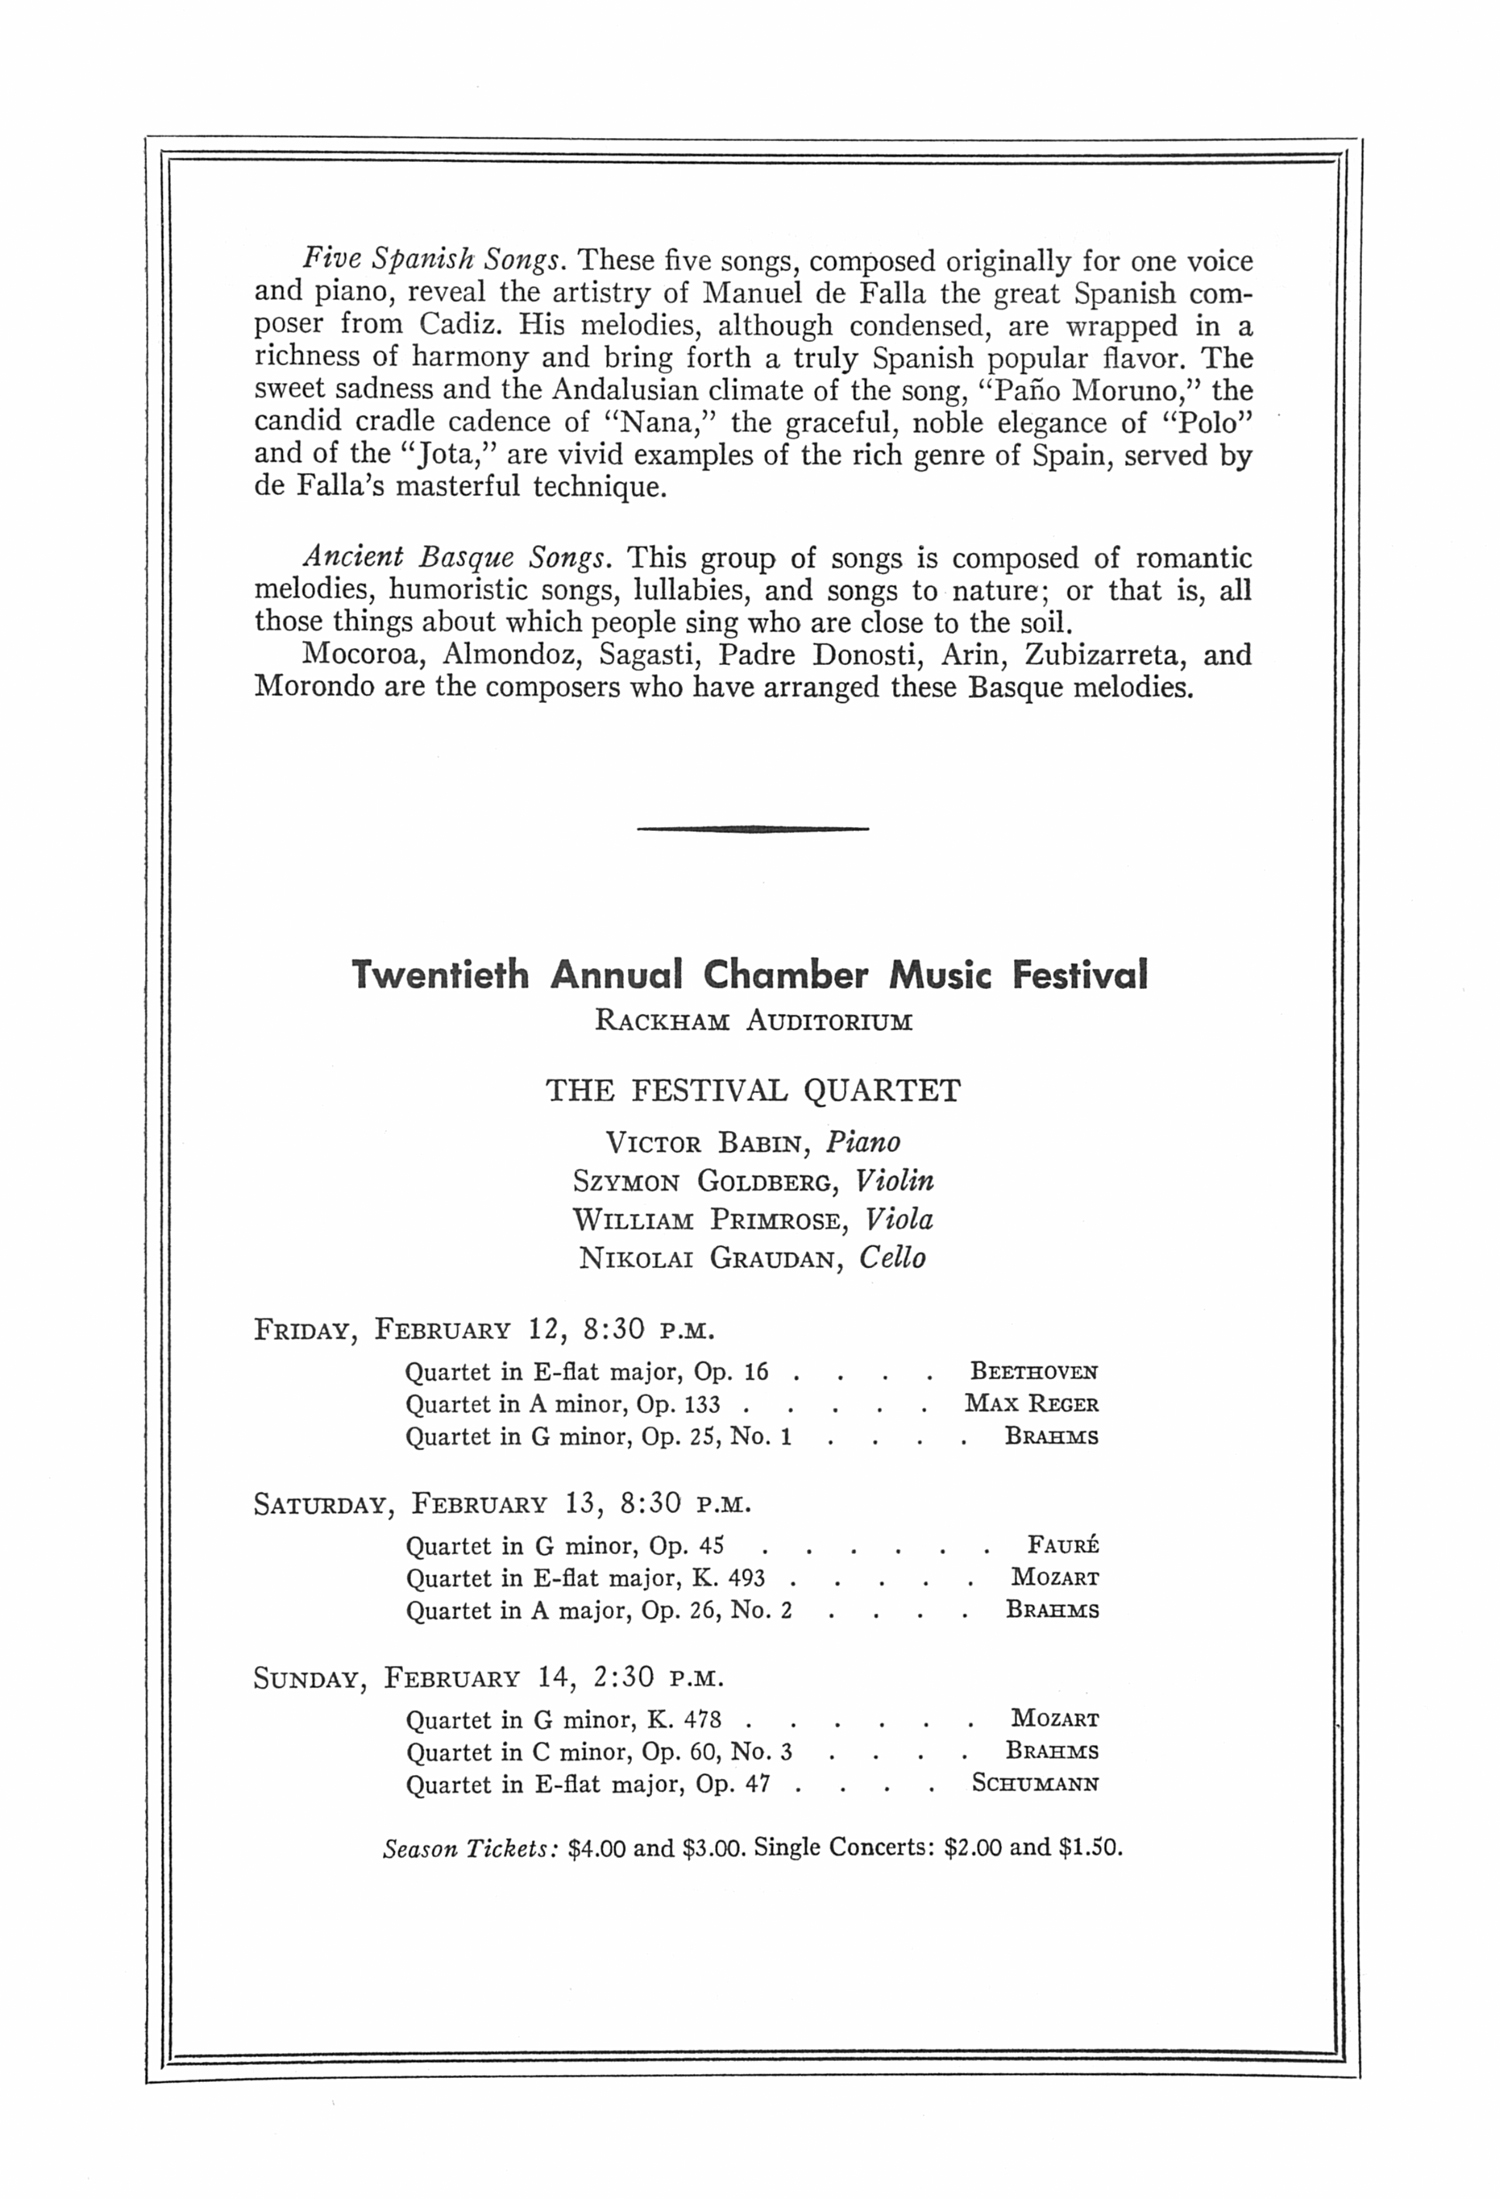 UMS Concert Program, November 15, 1959: The Pamplona Choir From Spain -- Luis Morondo image